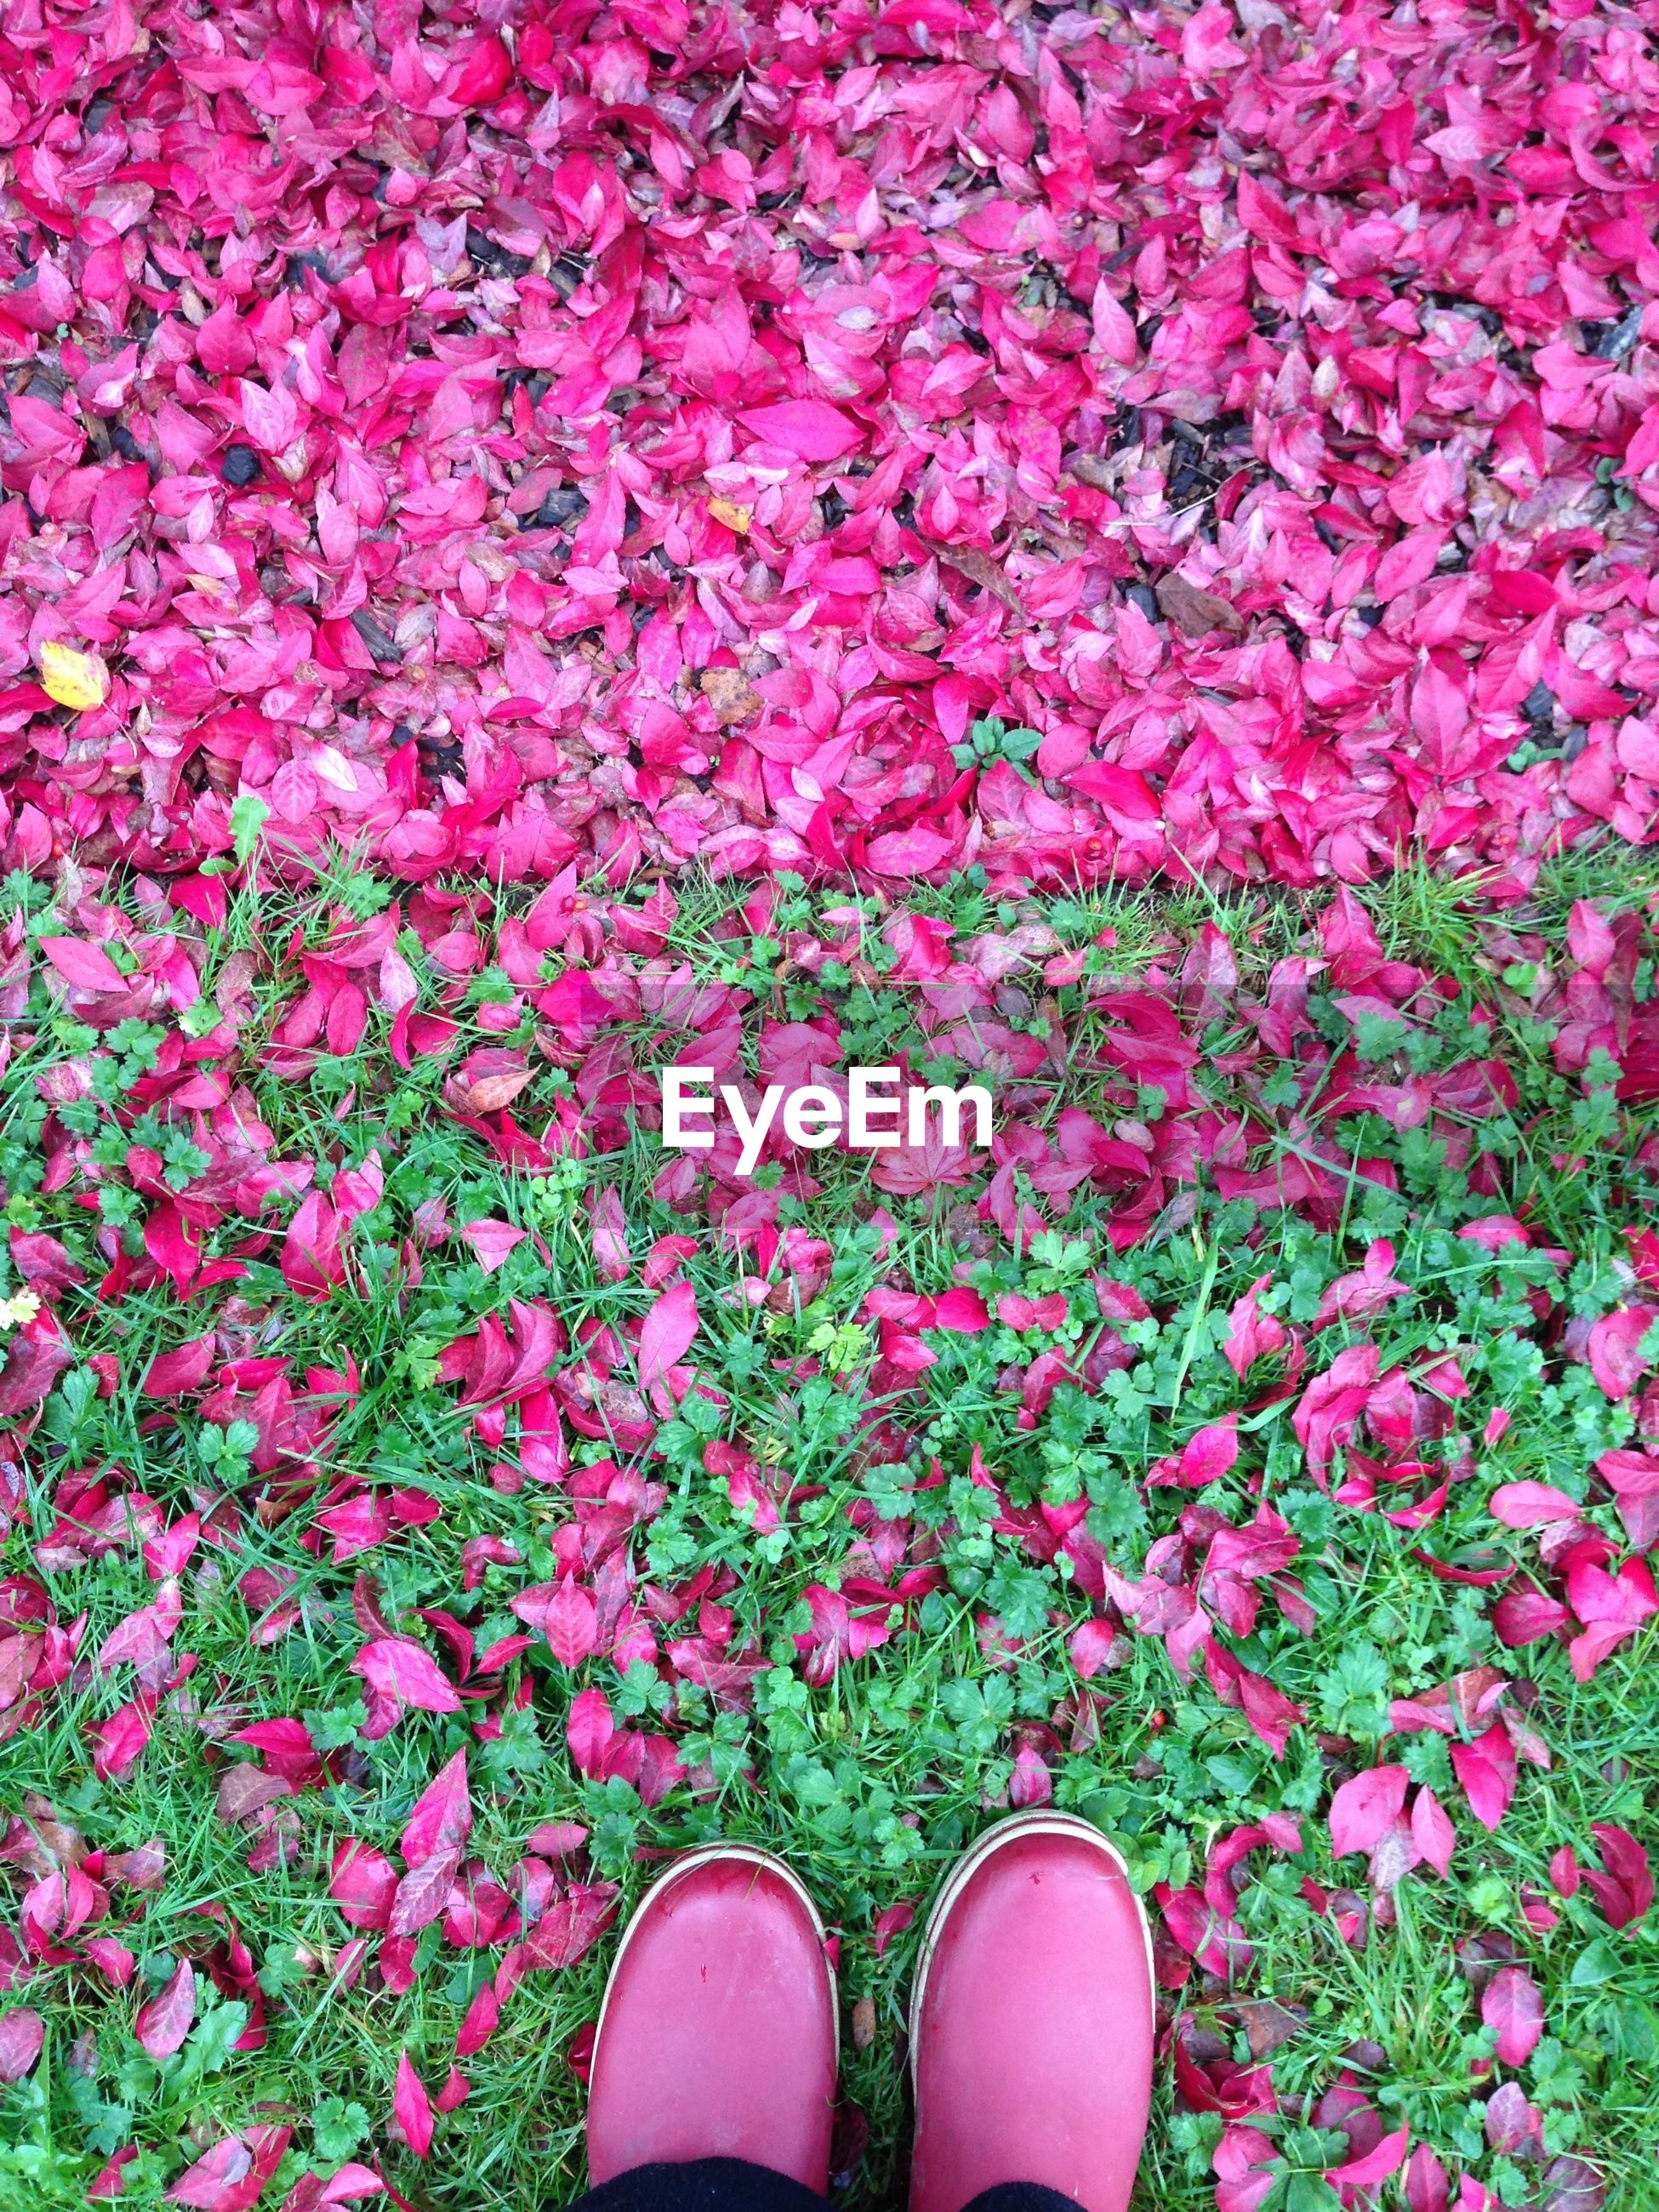 Shoes on pink blooming flowers